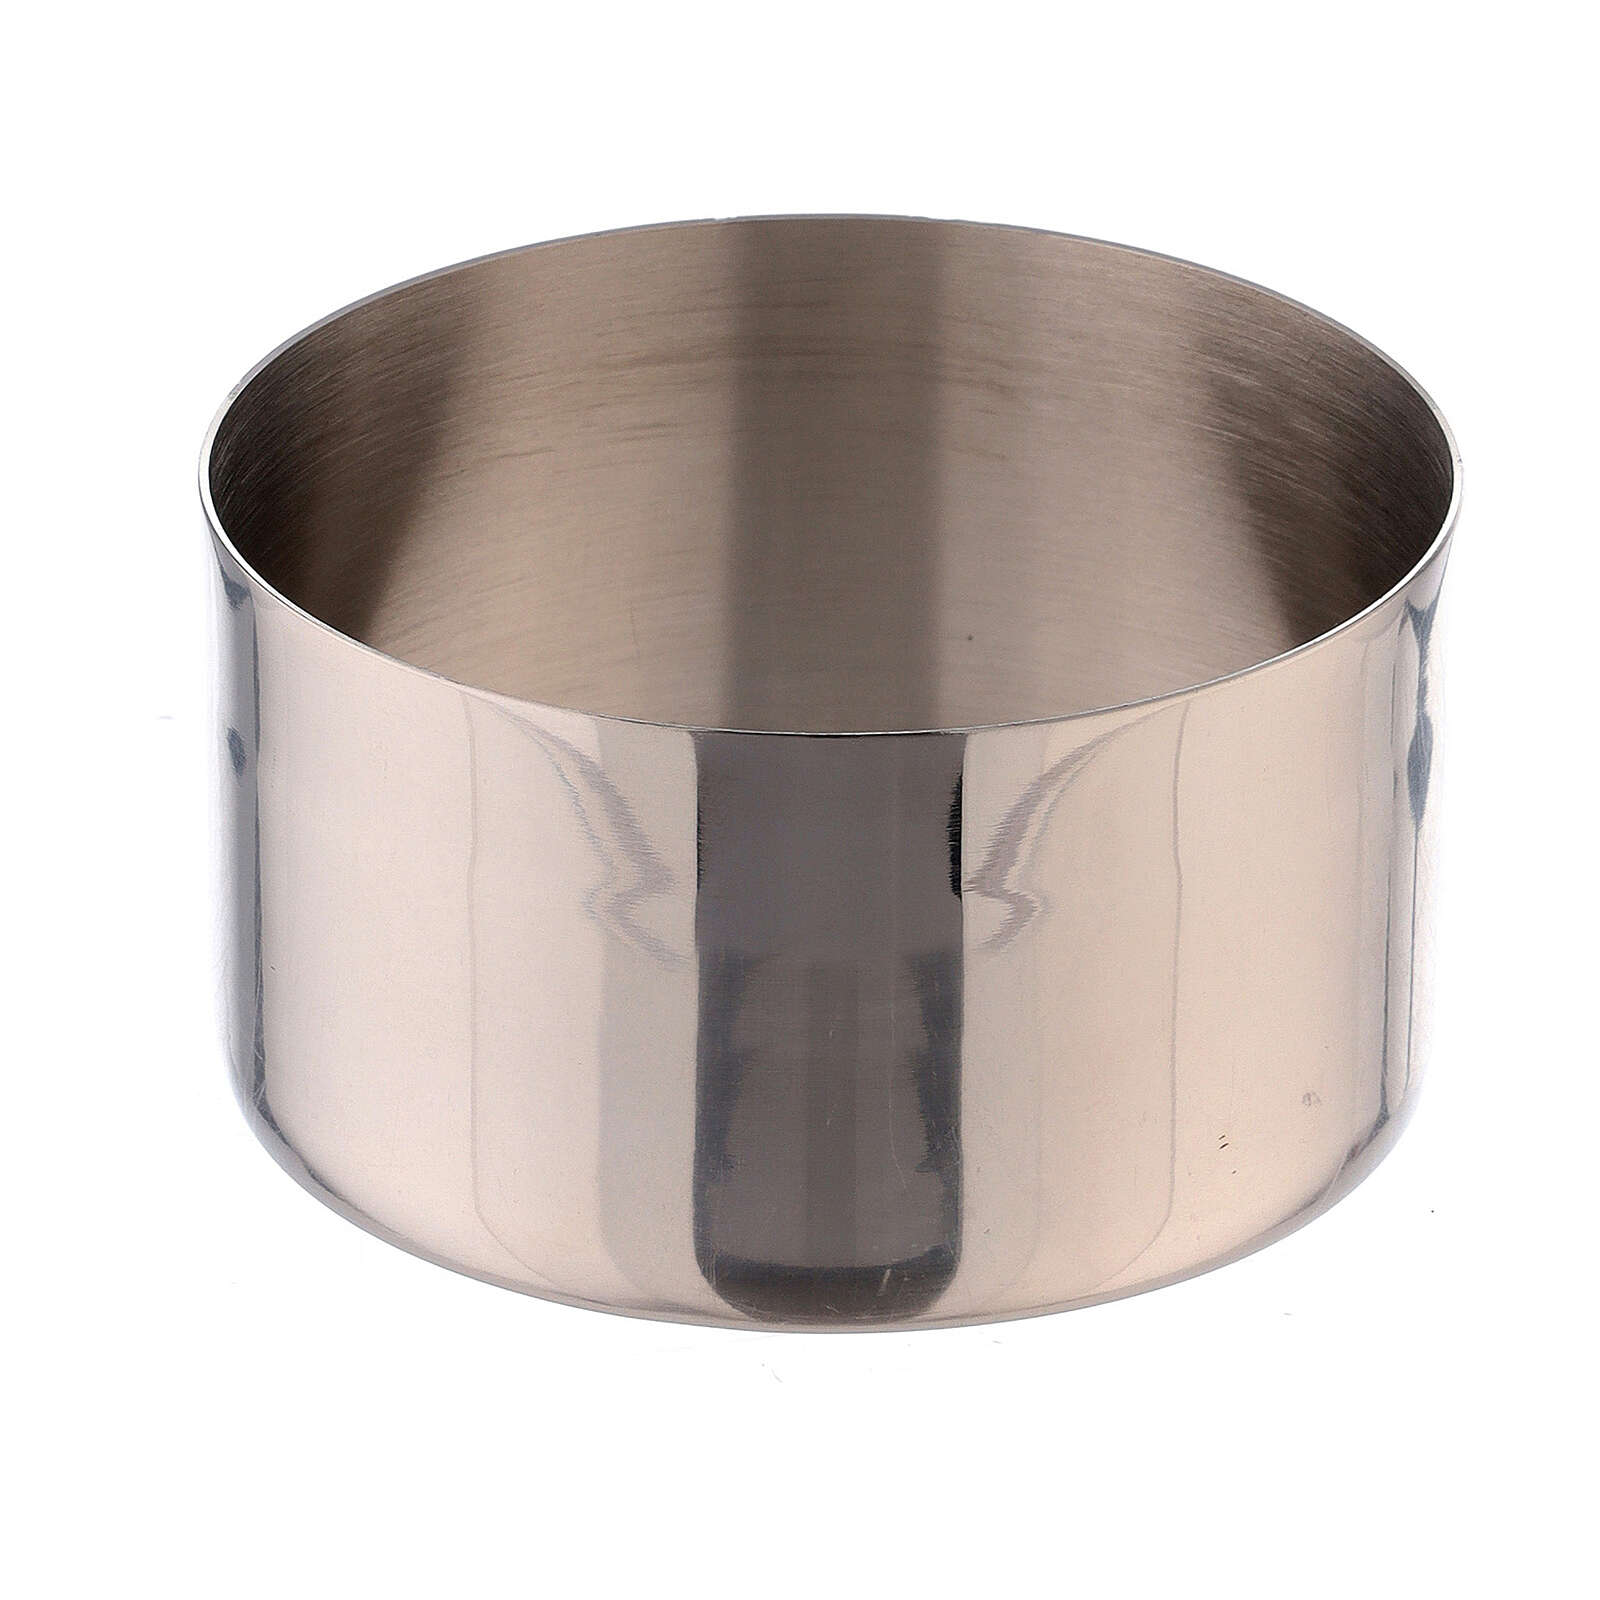 Polished nickel-plated brass candle ring 2 3/4 in 4